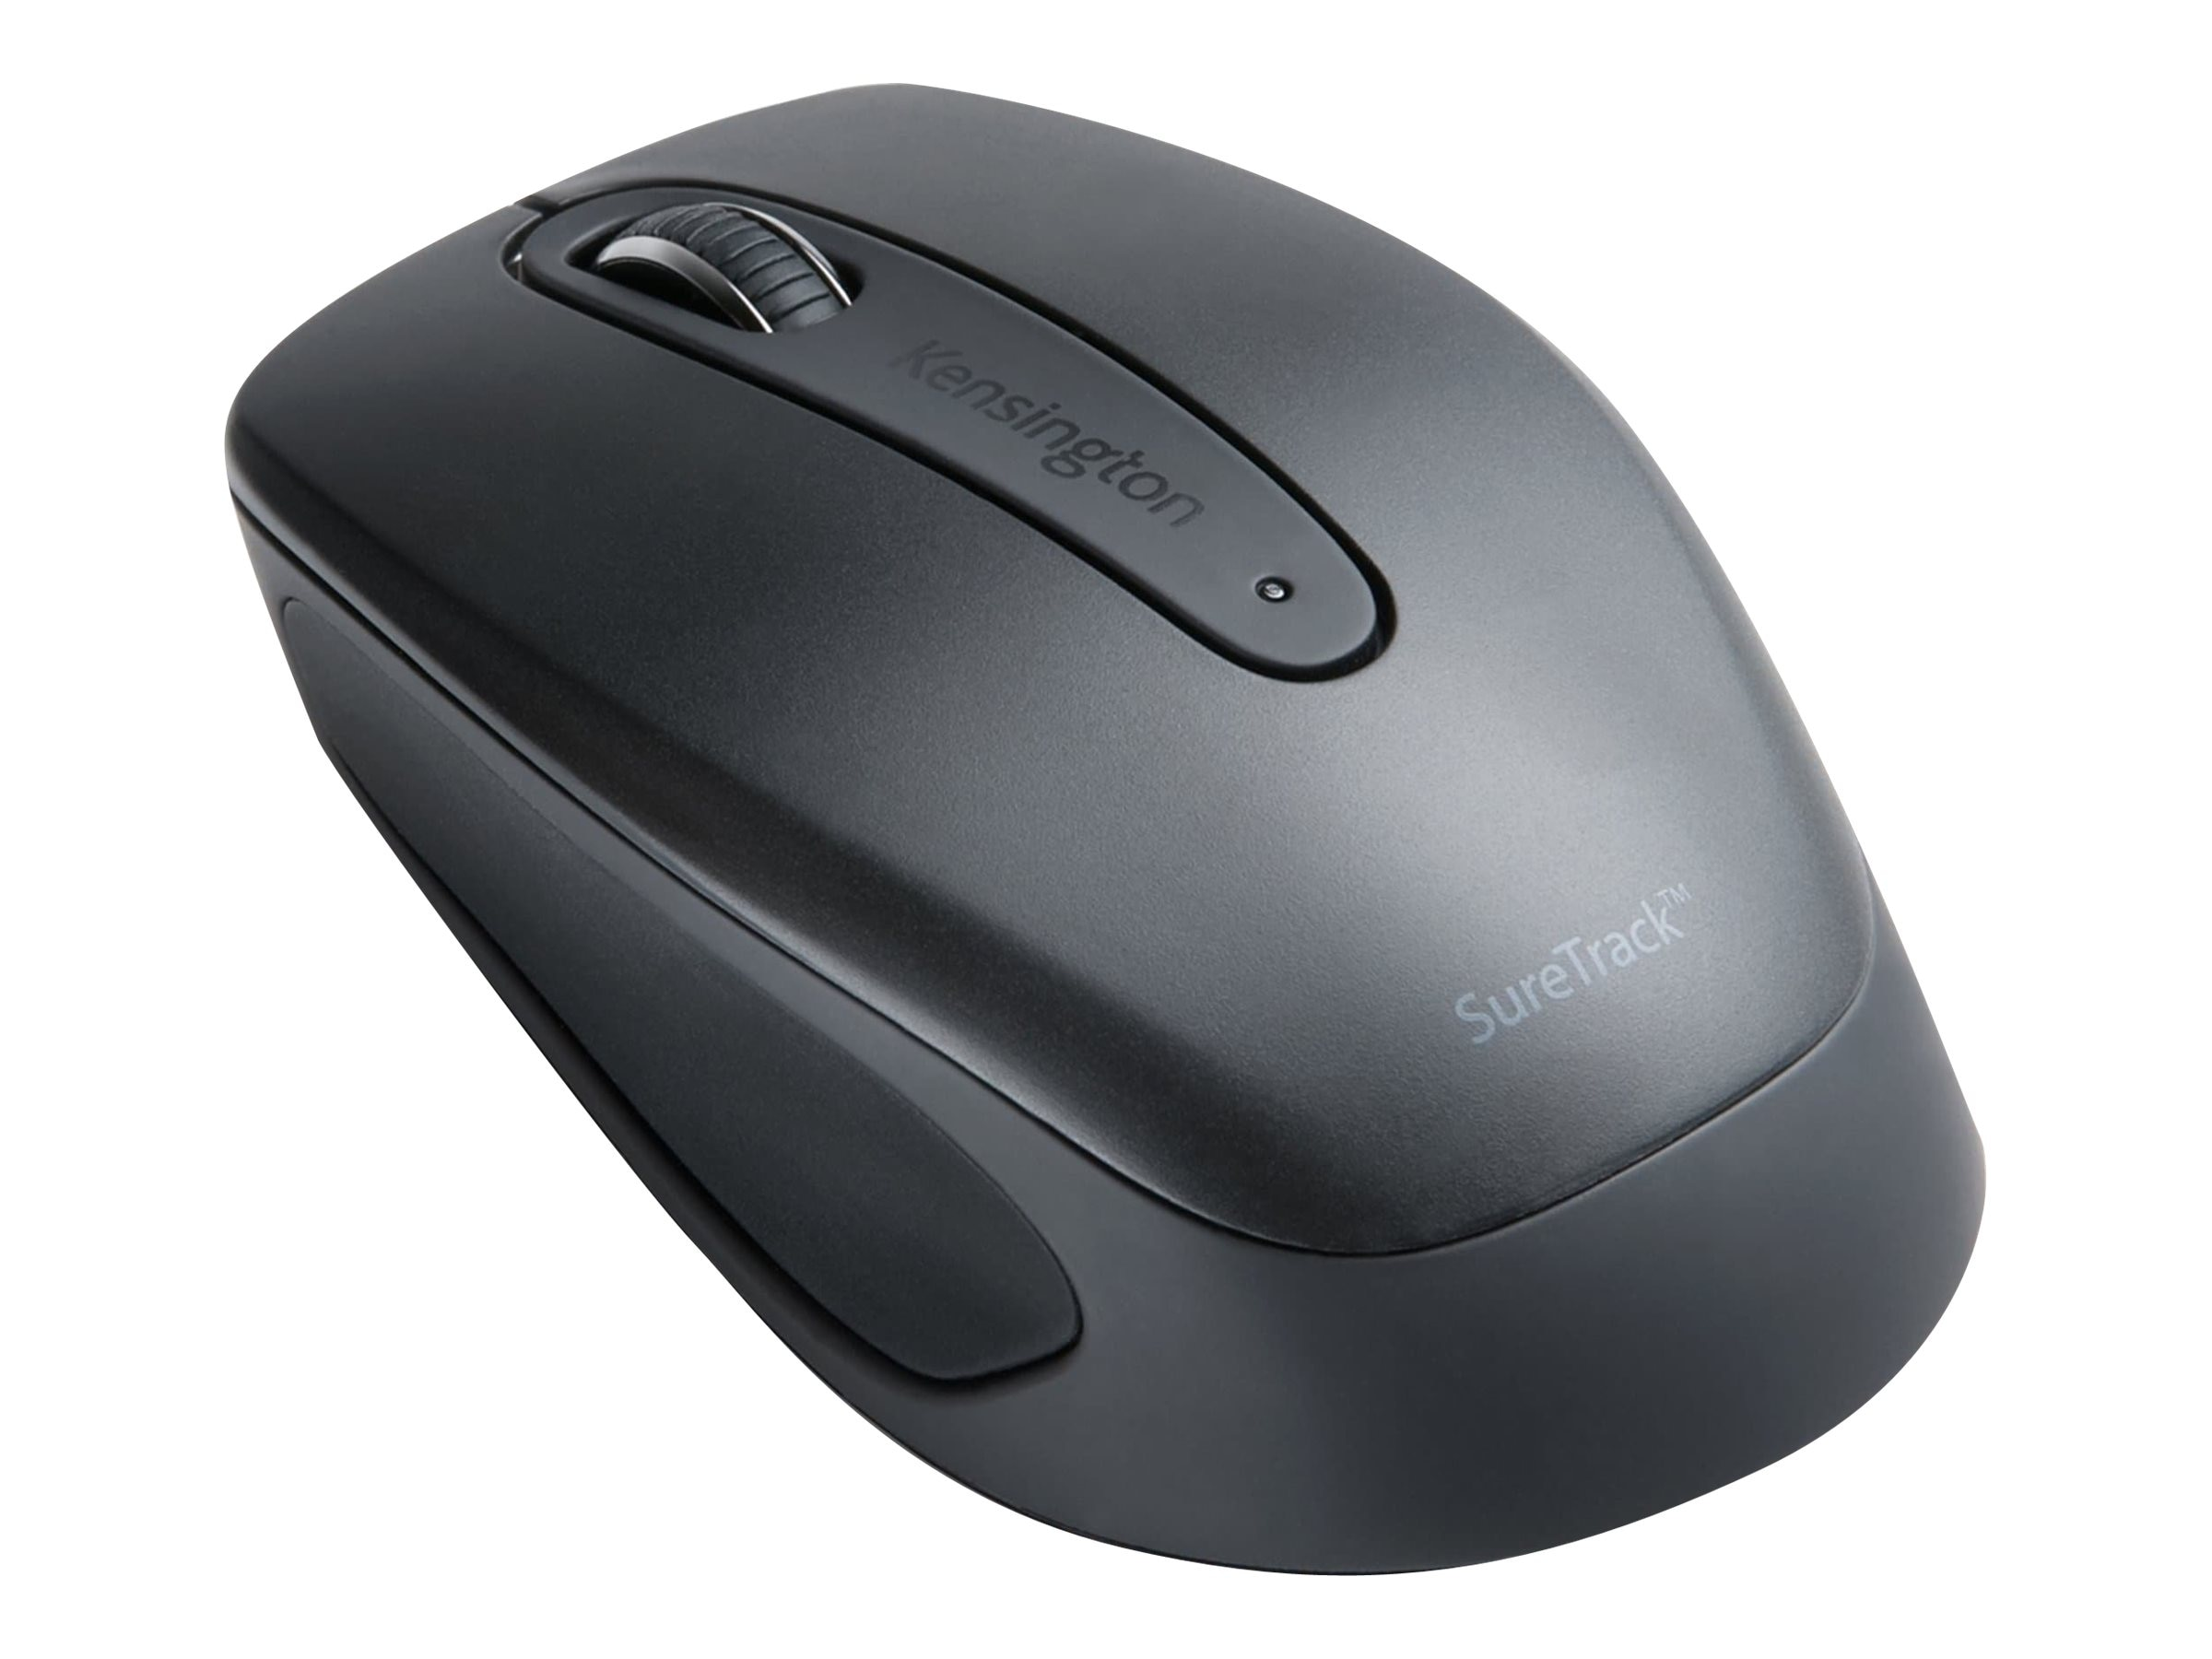 Kensington SureTrack Bluetooth Mouse, Black